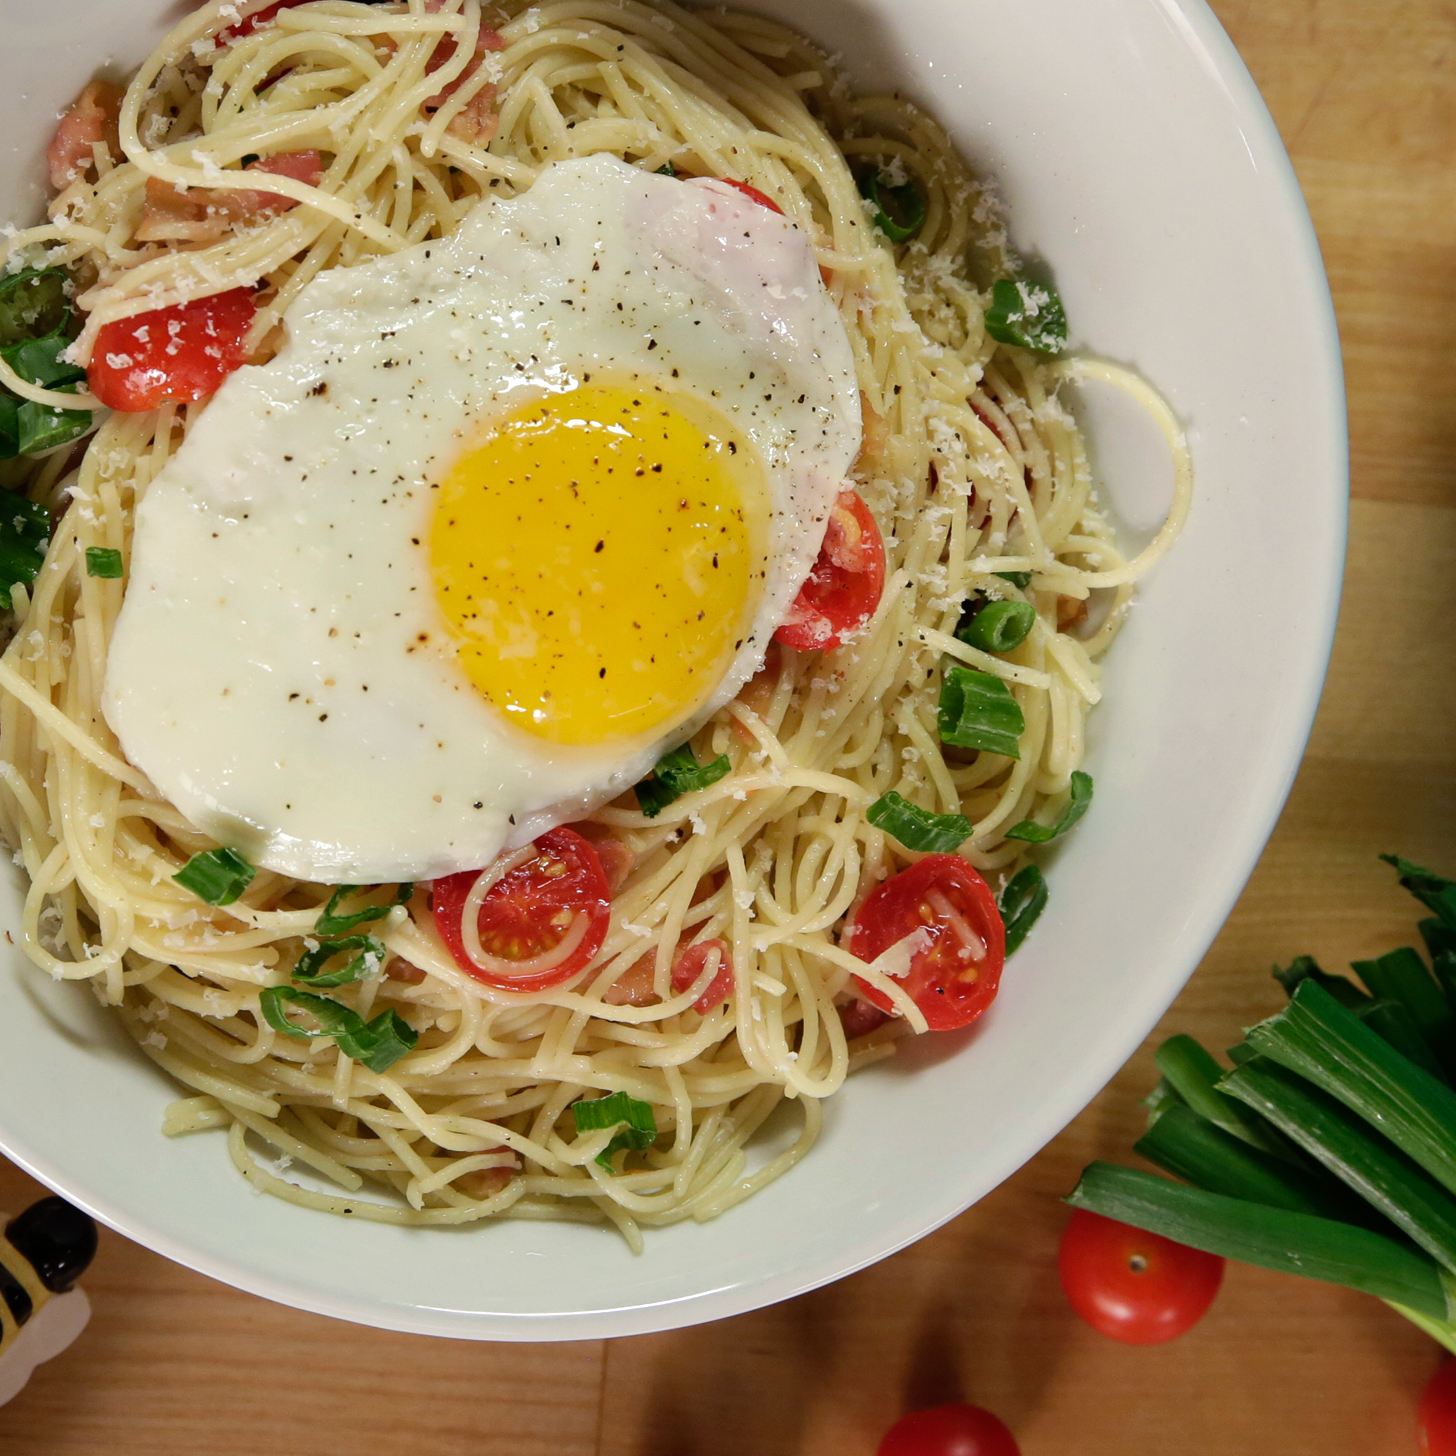 Popsugar Food: Breakfast Pasta Recipe